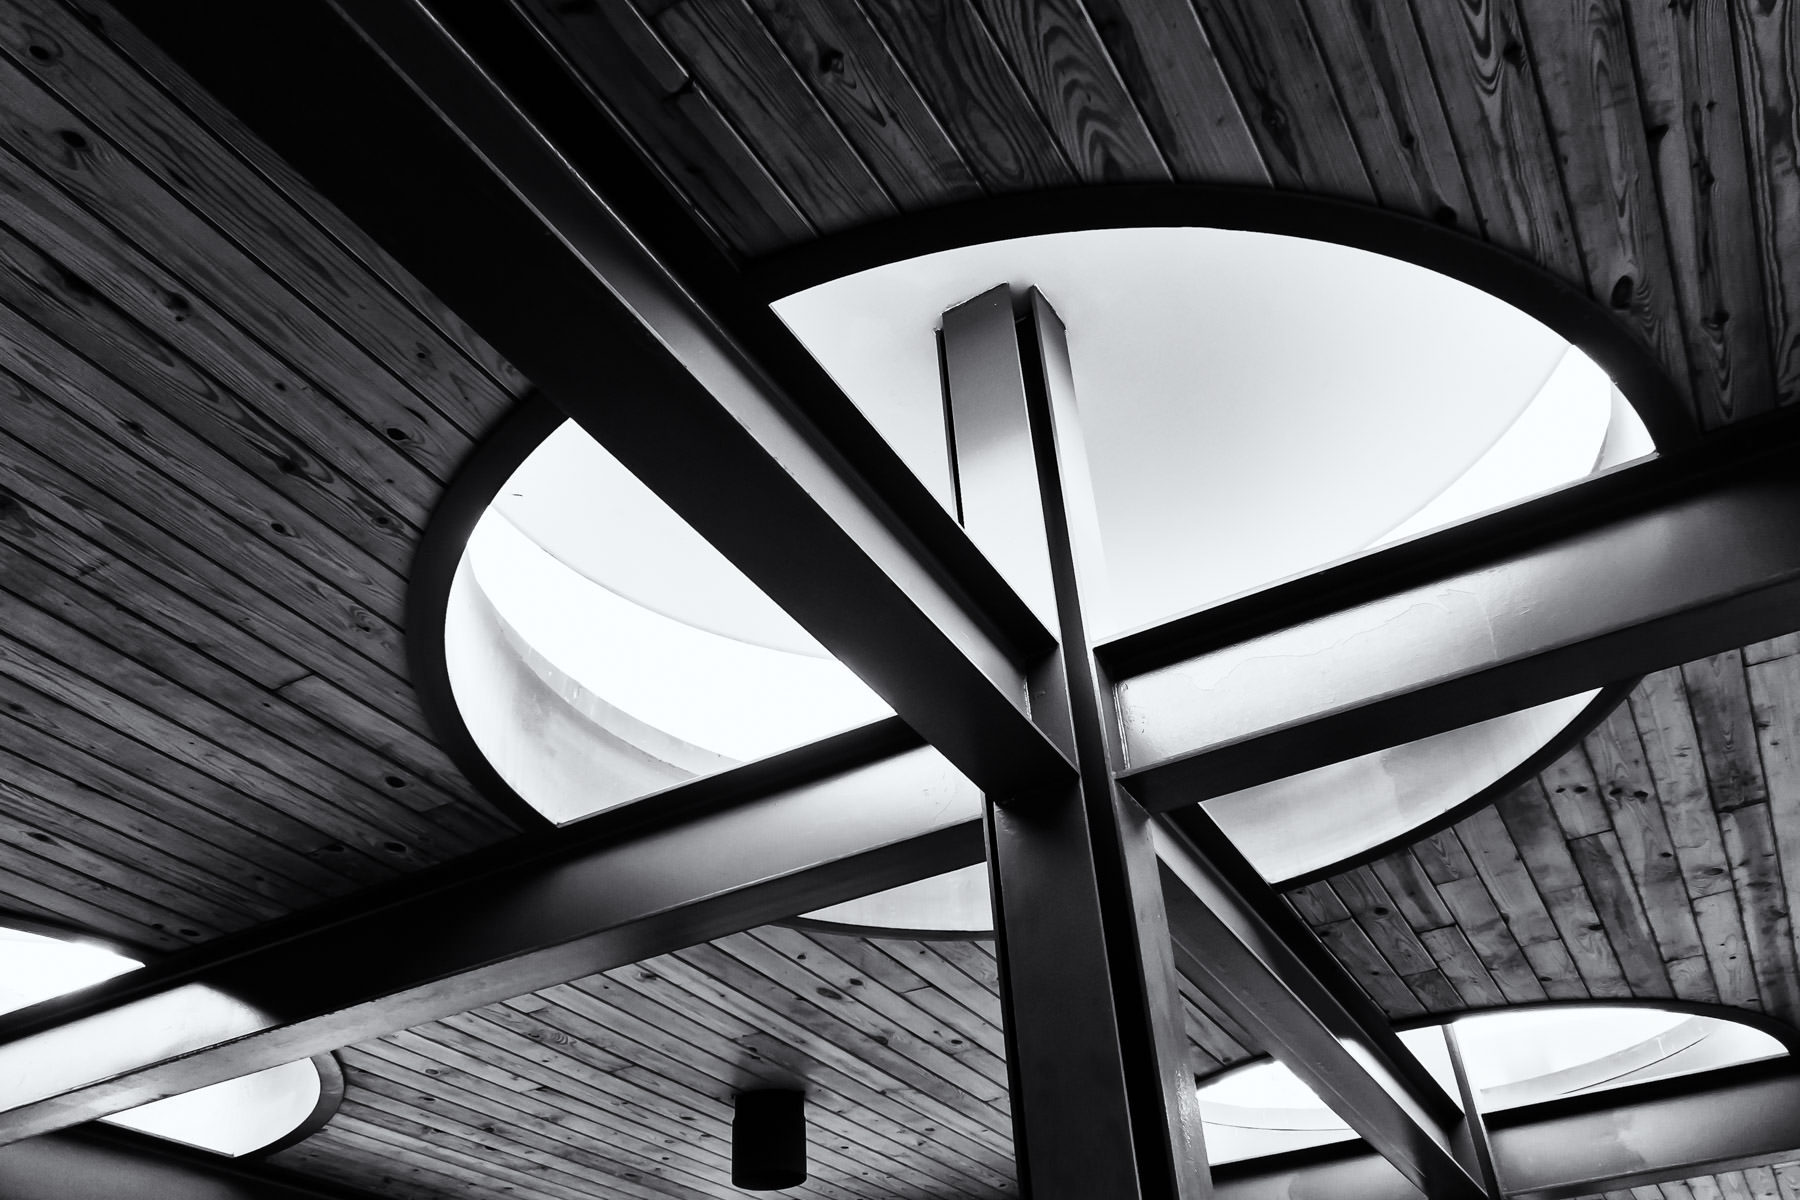 Detail of the roof of an open-air pavilion at Addison Circle Park, Addison, Texas.